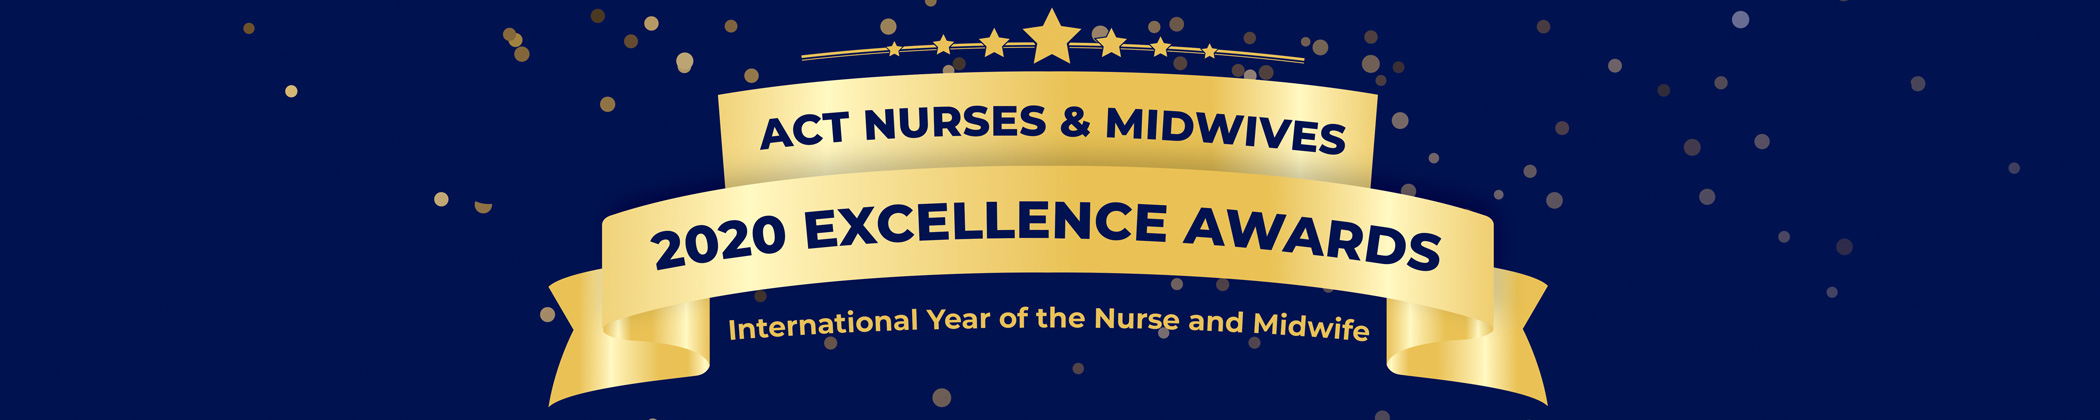 Nurses and Midwives Excellence Awards 2020